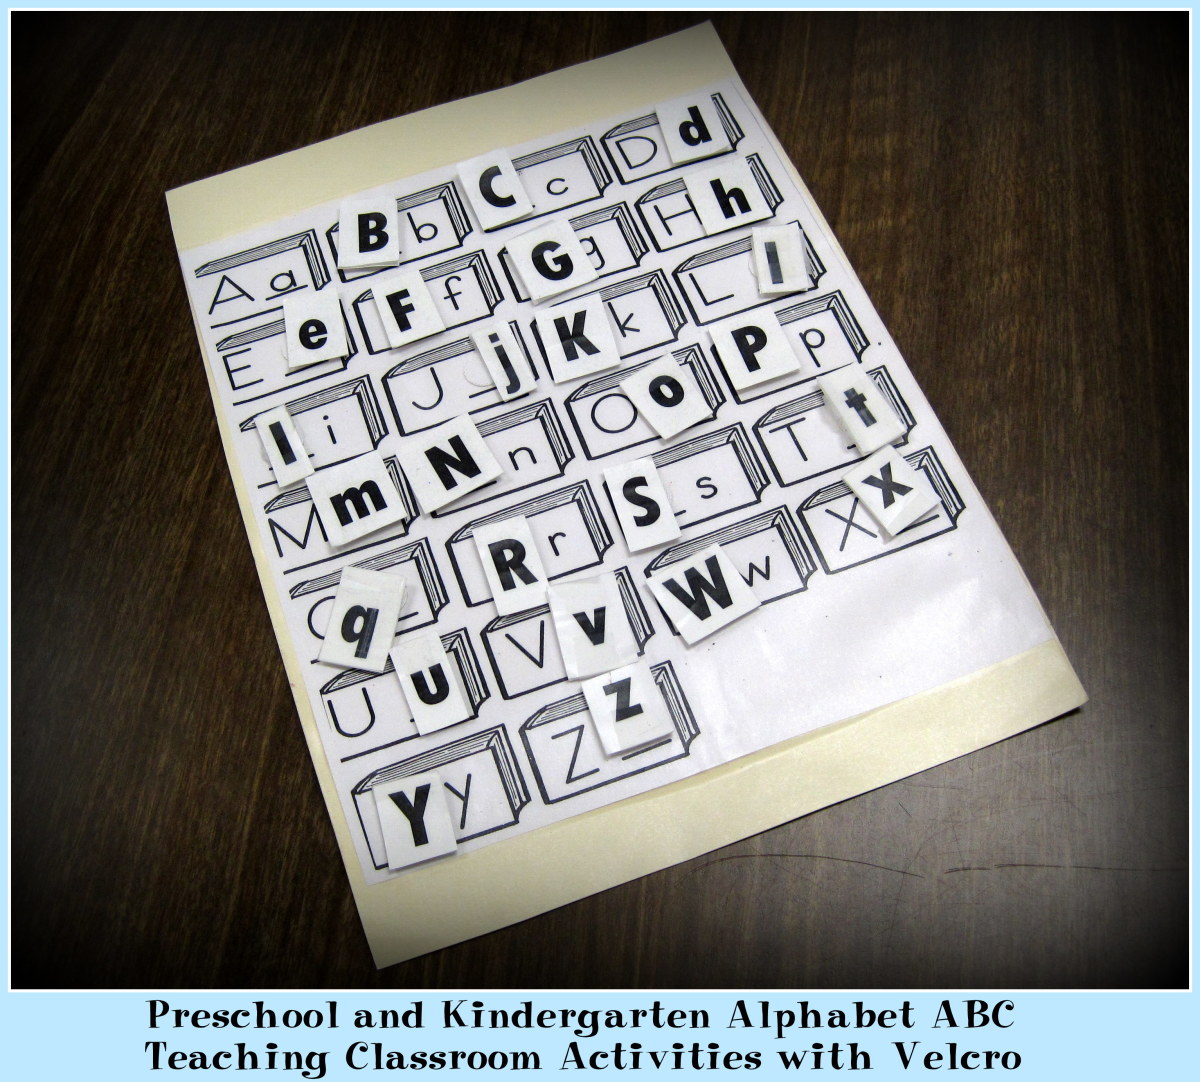 Preschool and Kindergarten Alphabet ABC Teaching Classroom Activities with Velcro